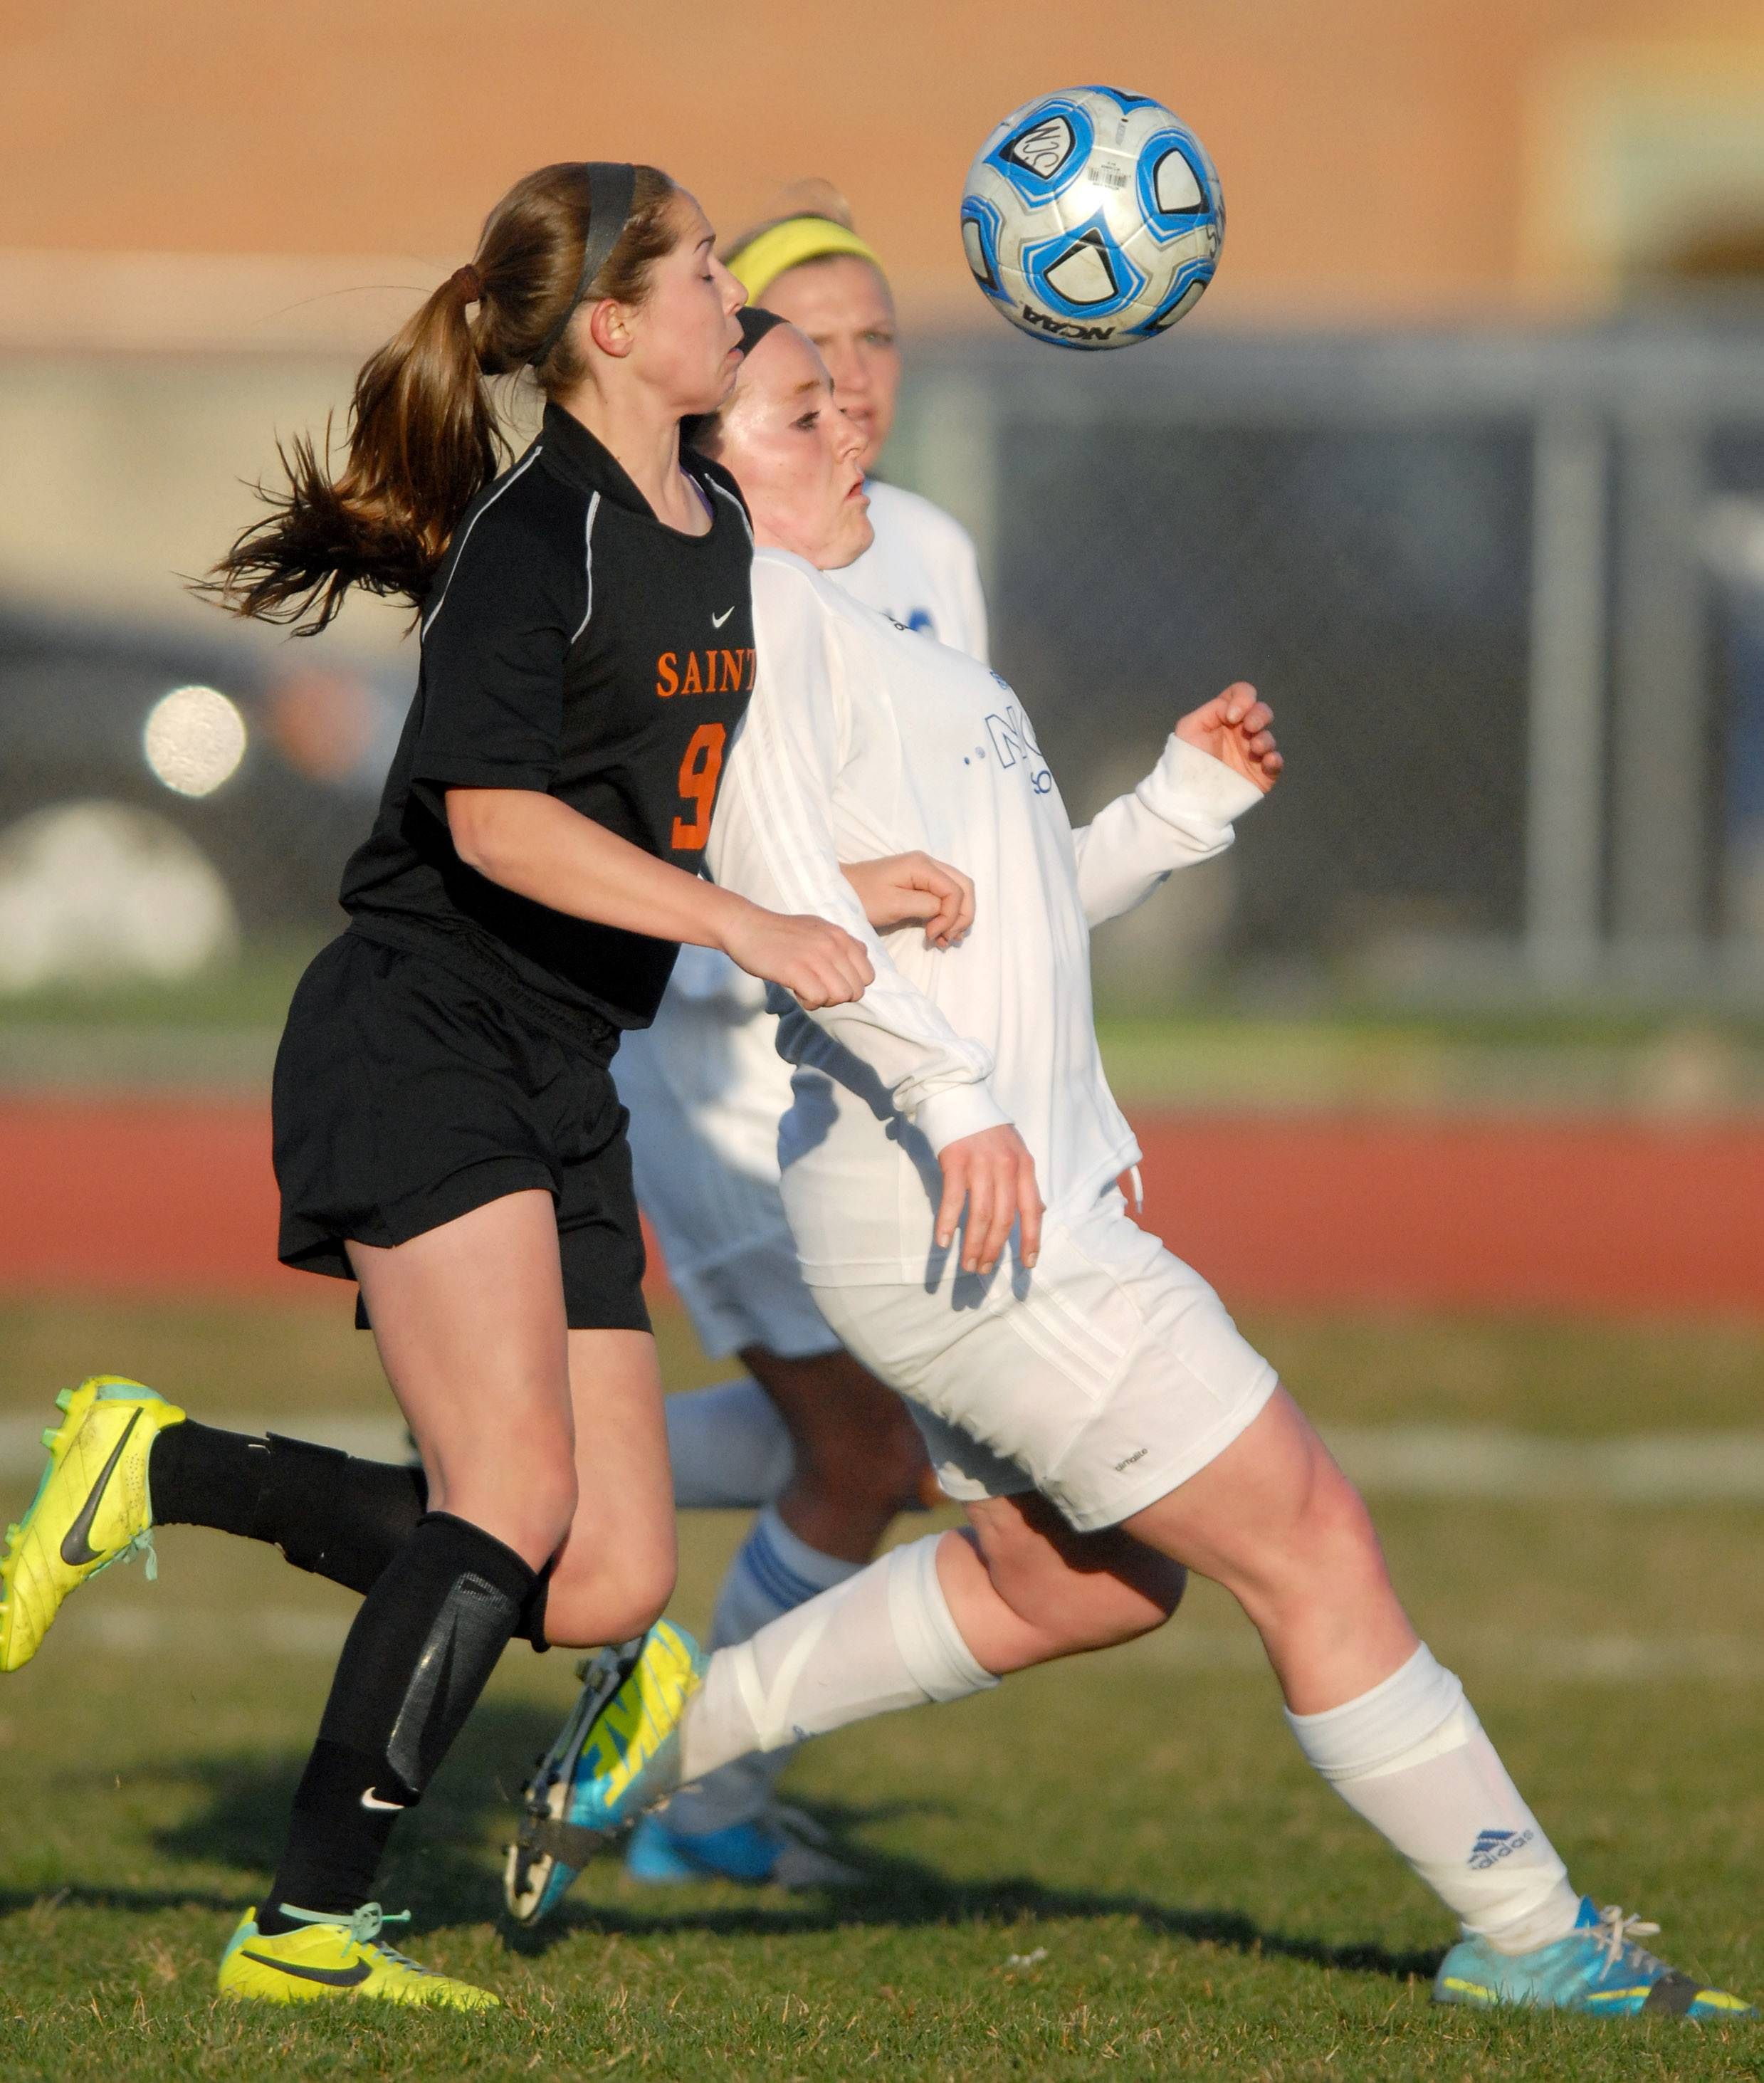 St. Charles East's Darcy Cunningham, left, and St. Charles North's Megan O'Leary fight for the ball in the first half on Tuesday, April 22.